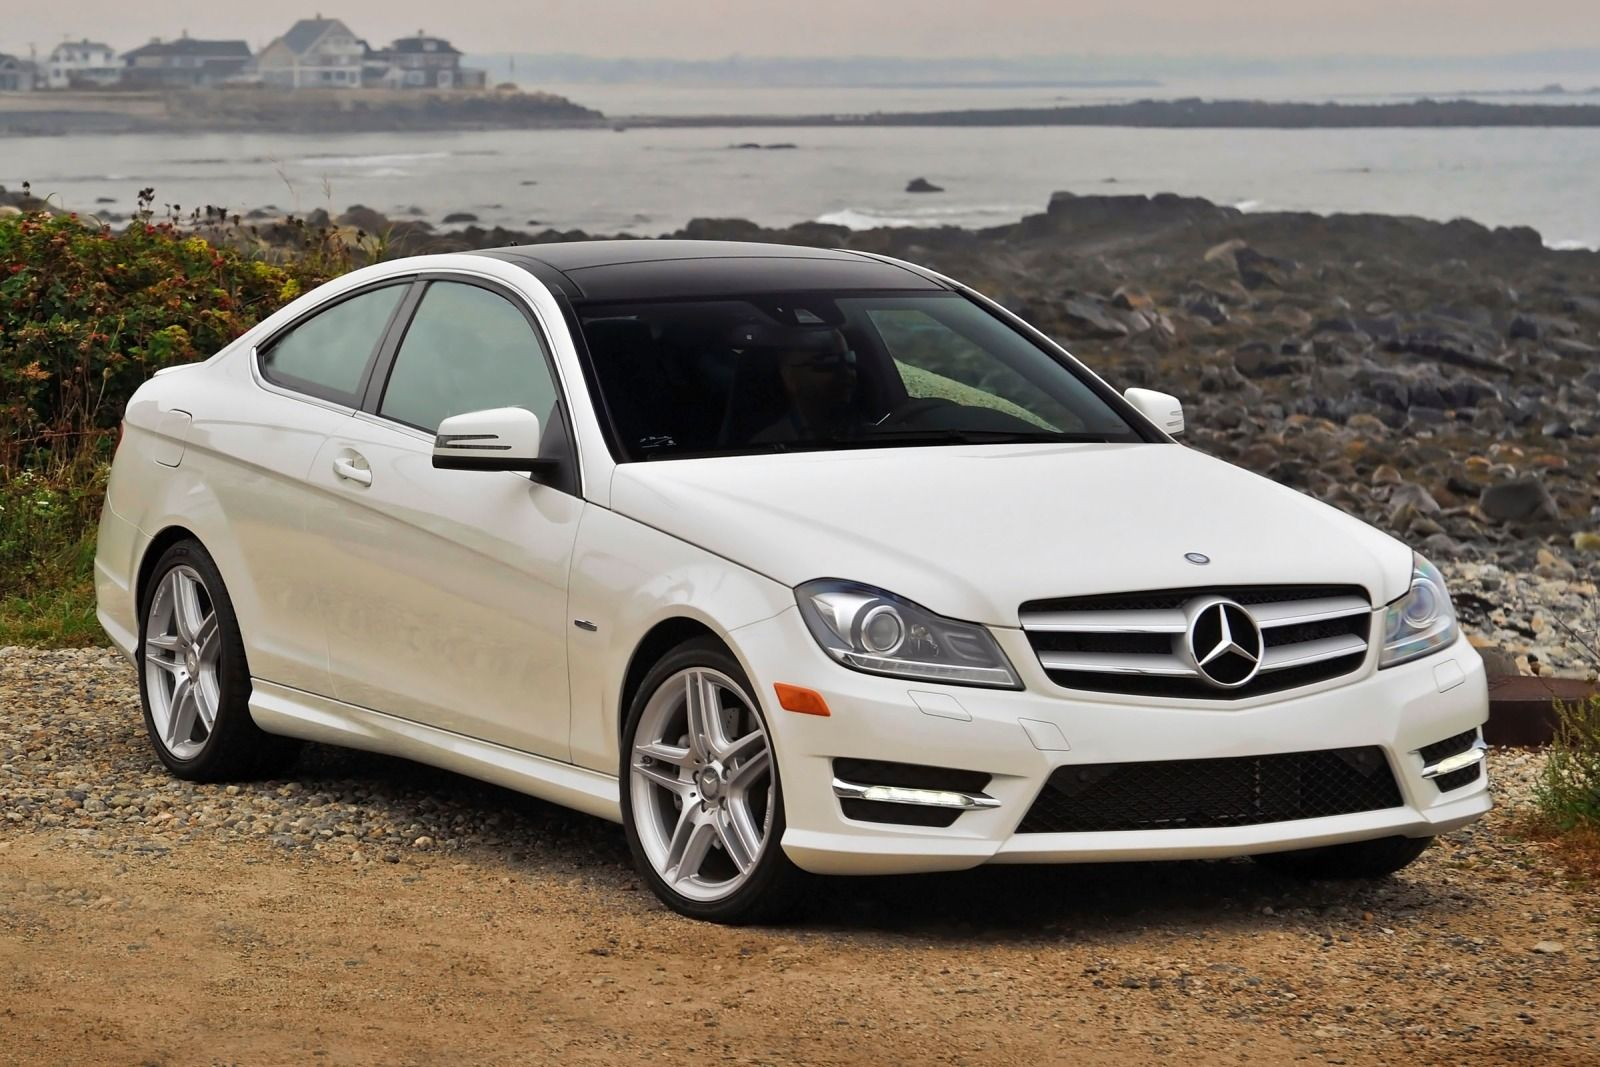 2015 mercedes c300 test drive autos post. Black Bedroom Furniture Sets. Home Design Ideas